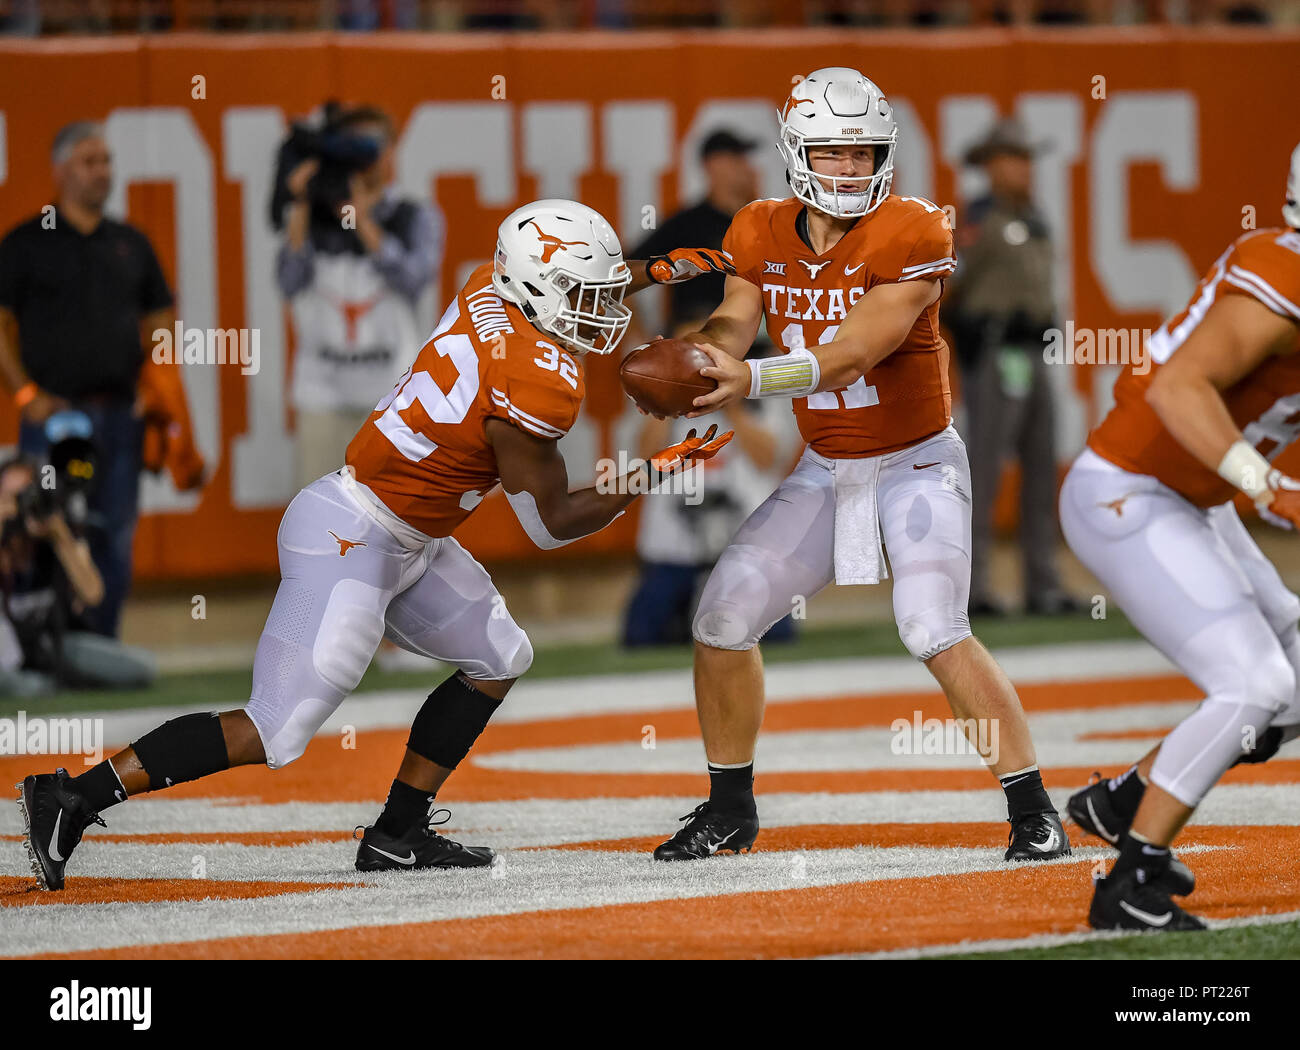 Austin, TX, USA. 15th Sep, 2018. Longhorn running back, Daniel Young (32), takes a handoff from quarterback, Sam Ehlinger (11), during the NCAA football game between the University of Texas Longhorns and the USC Trojans, in Austin, TX. (Absolute Complete Photographer & Company Credit: Joseph Calomeni/MarinMedia.org/Cal Sport Media) Credit: csm/Alamy Live News - Stock Image